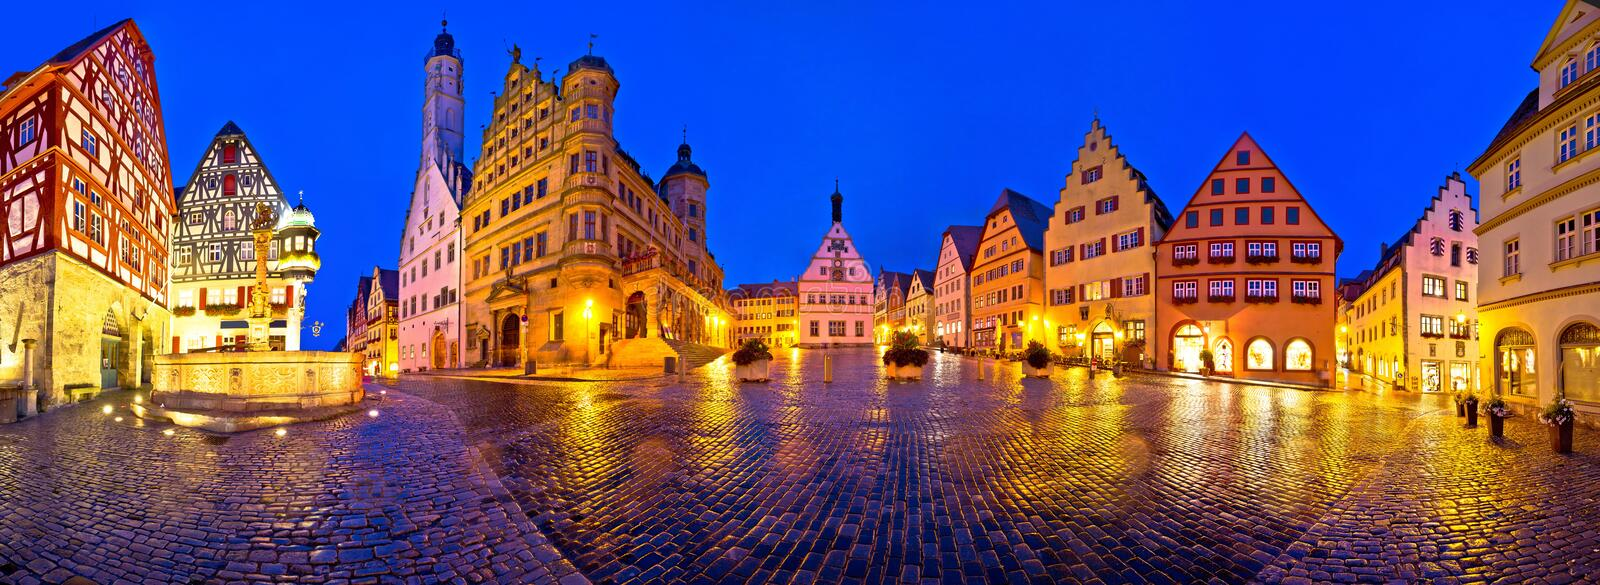 Main square Marktplatz or Market square of medieval German town of Rothenburg ob der Tauber evening panoramic view. Rothenburg ob der Tauber. Main square royalty free stock images